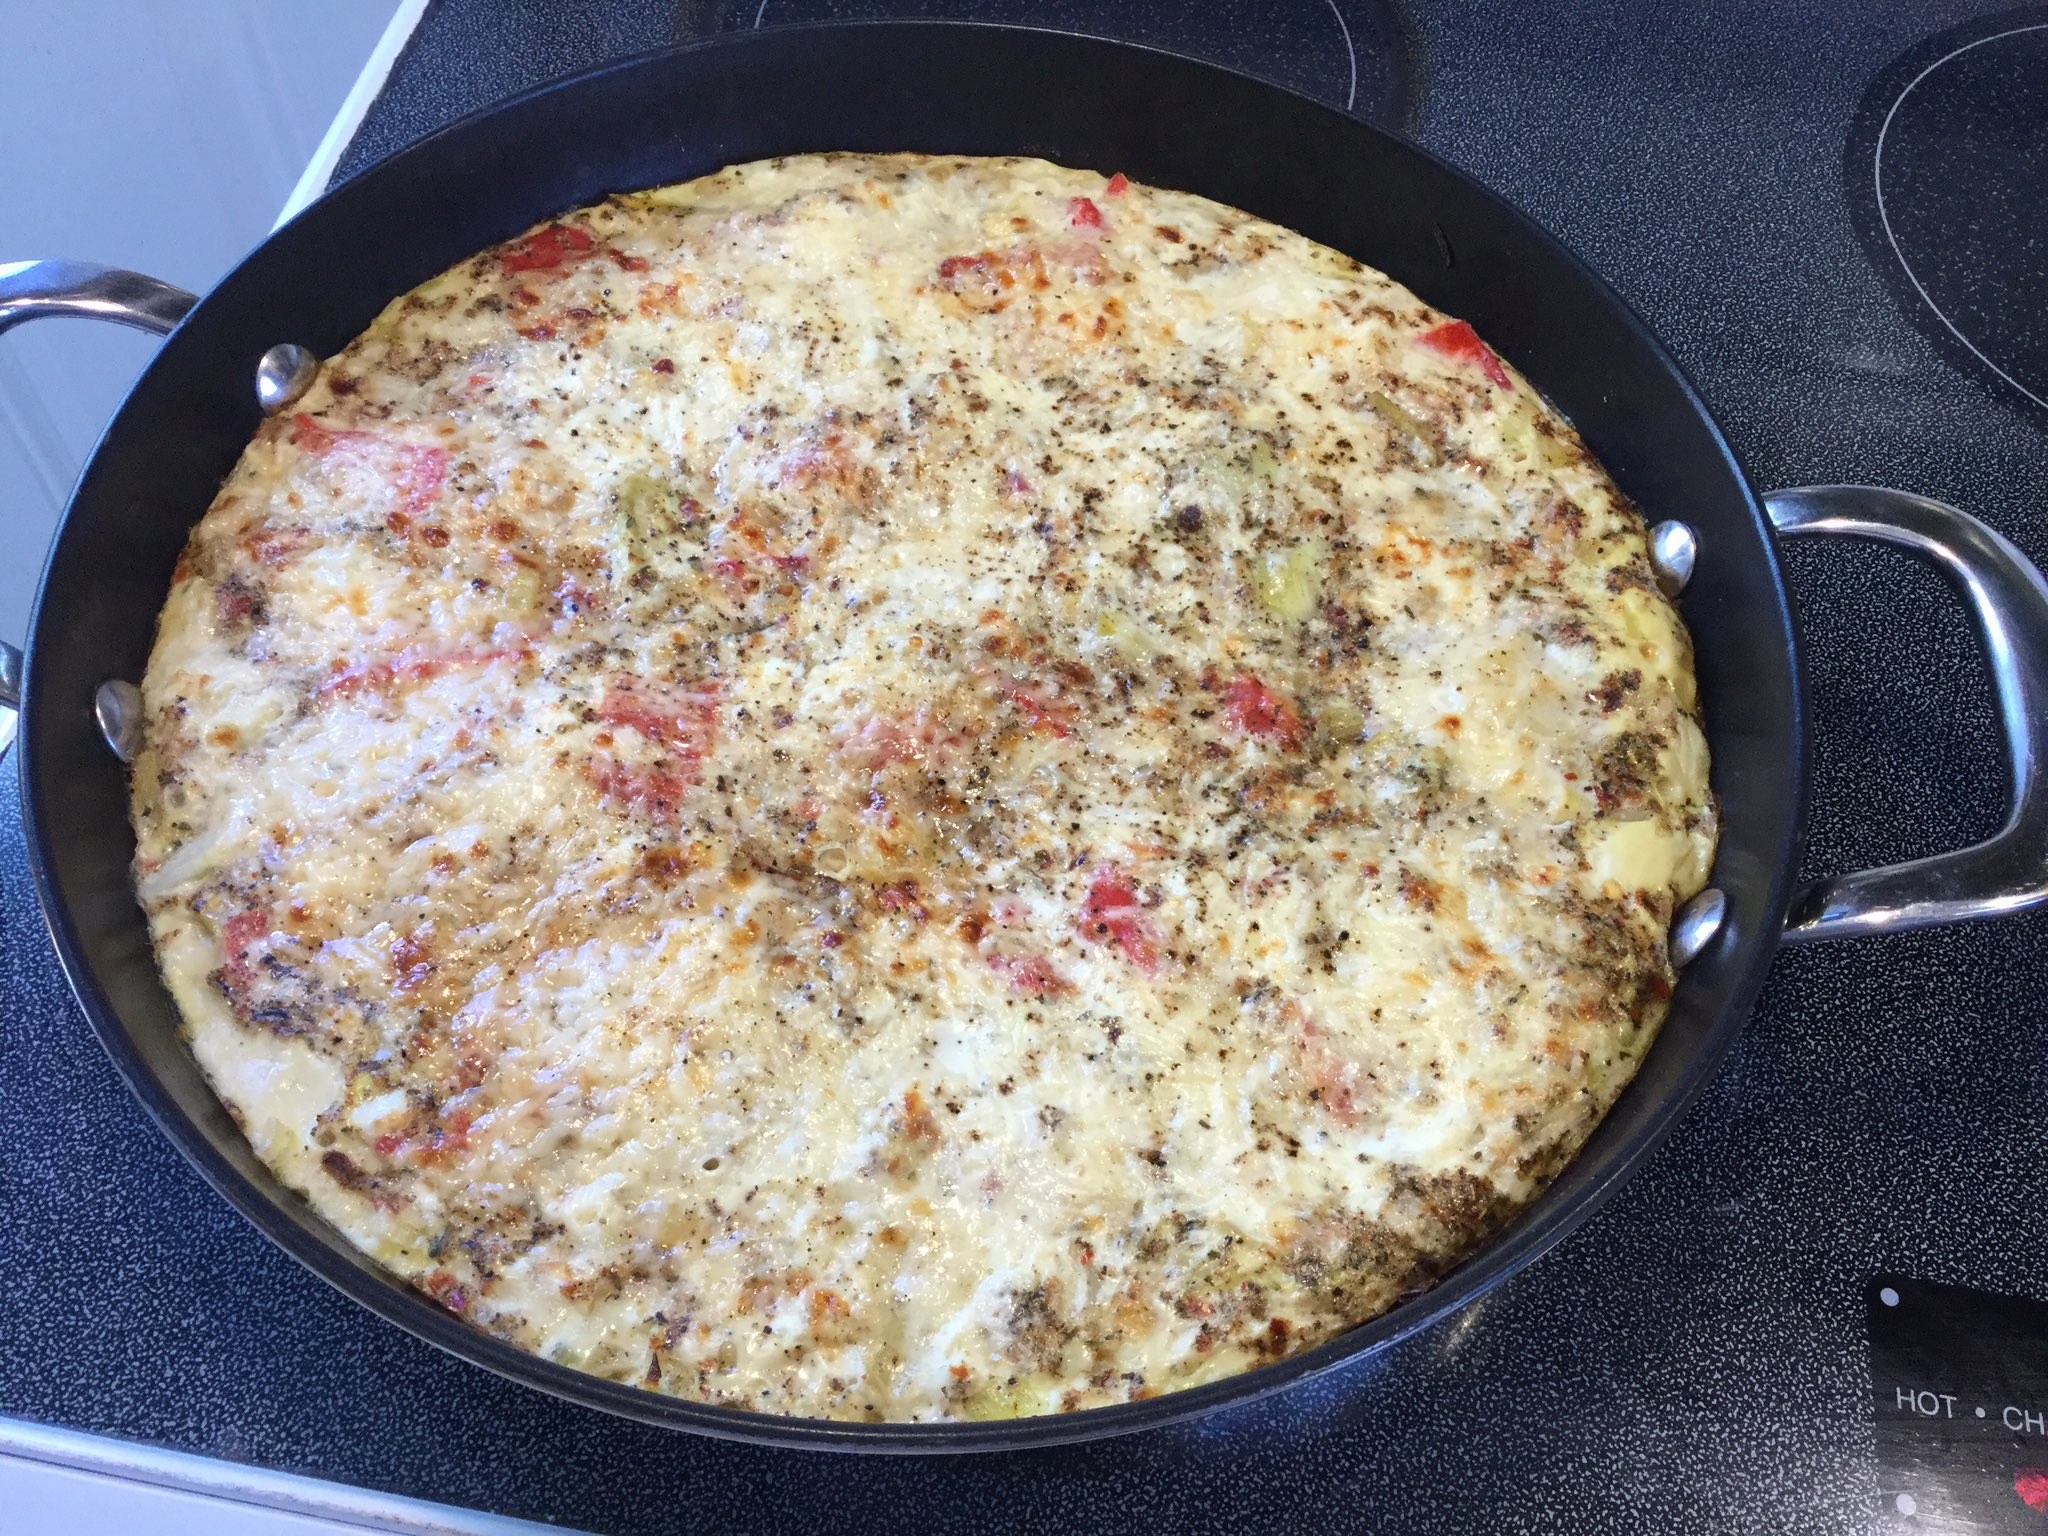 Artichoke and roasted red pepper frittata- nice Sunday brunch in Halifax @ChefJewell https://t.co/xTG1GbVWdX